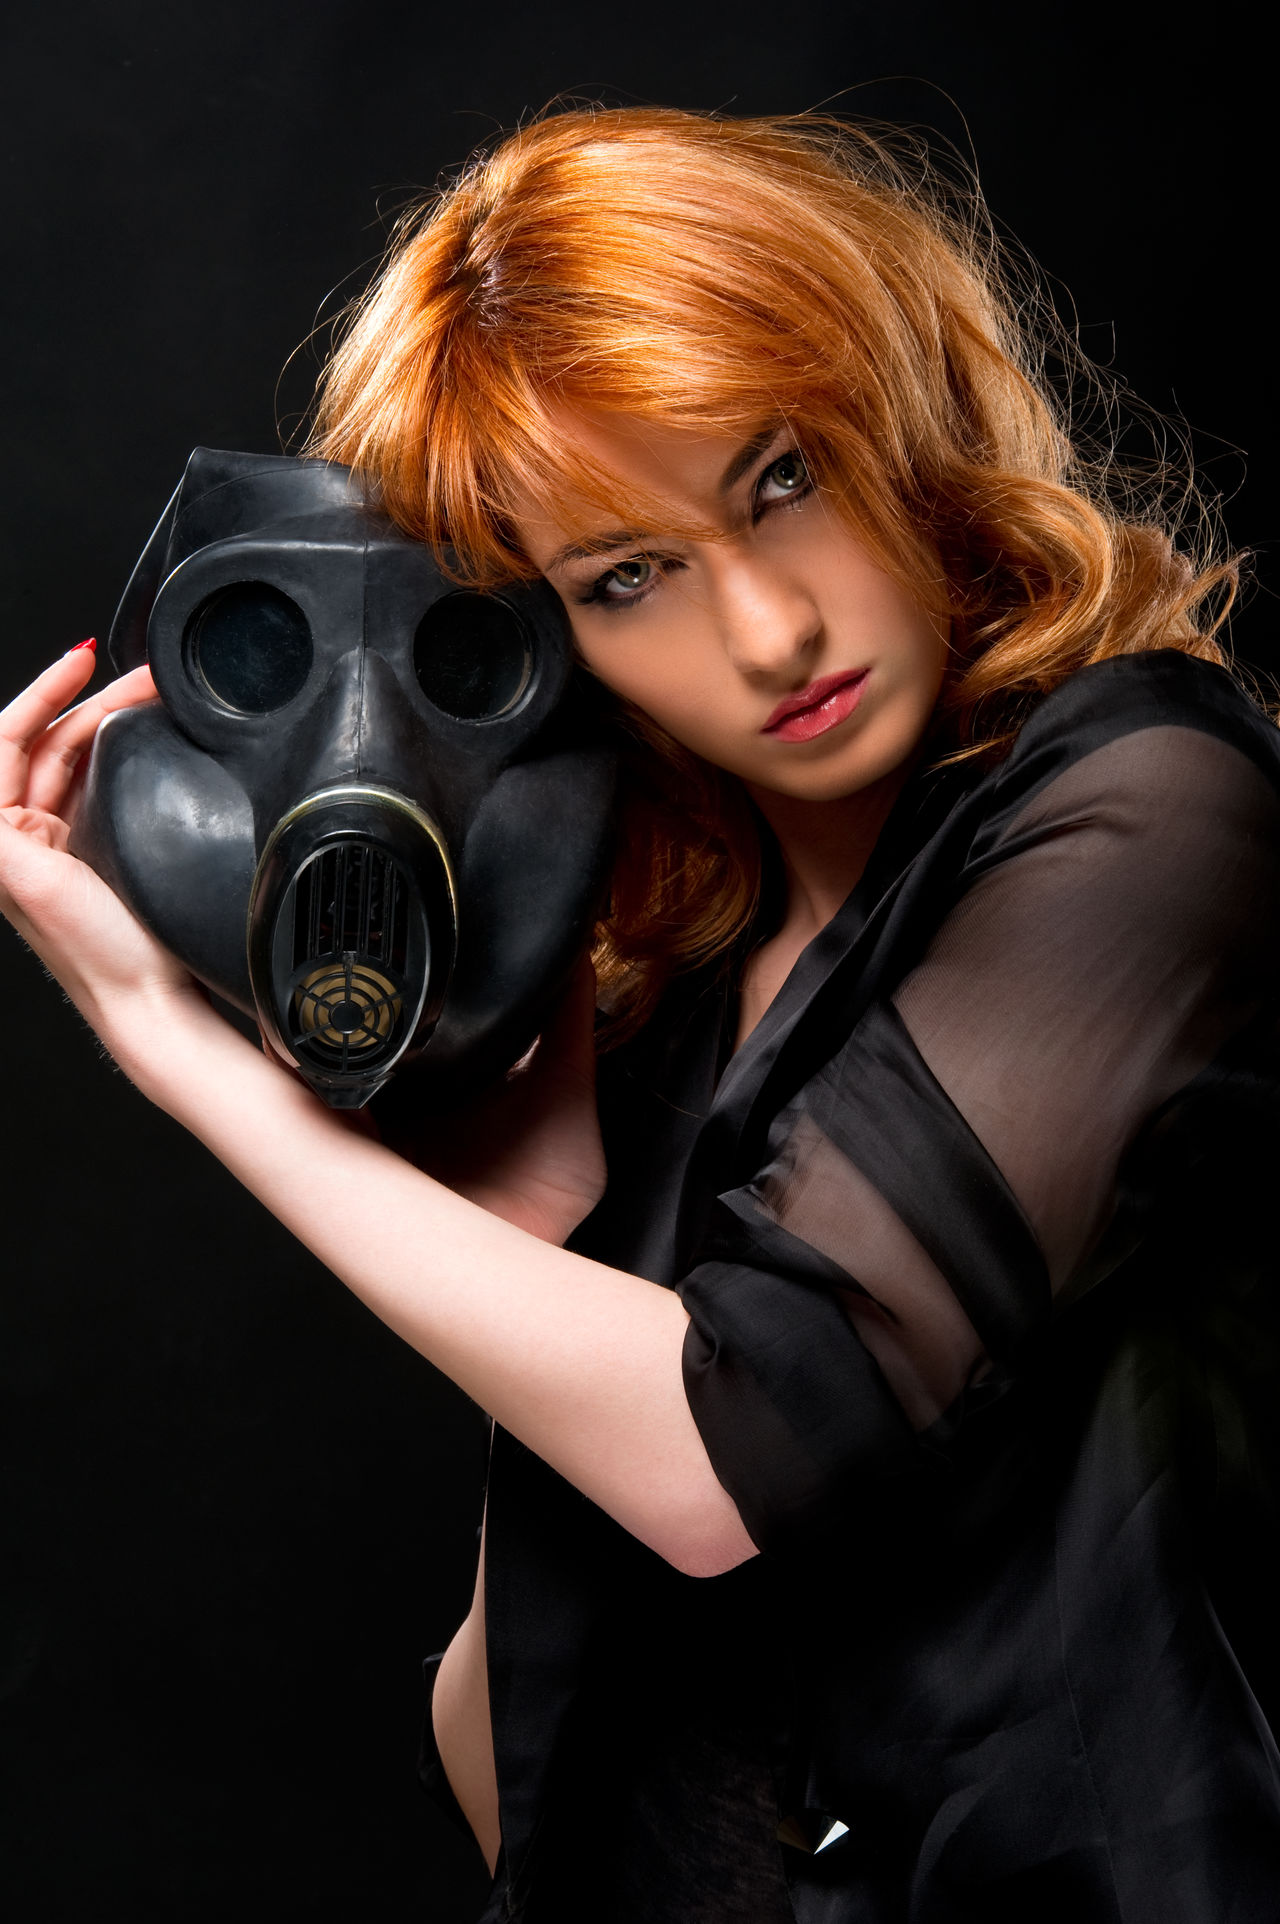 Redhead woman holding gas mask Adult Attractive Beautiful People Beautiful Woman Black Background Caucasian Conceptual Face Female Gas Mask Girl Holding Looking At Camera One Person People Pollution Portrait Radiation Redhead Studio Shoot Studio Shot Woman Young